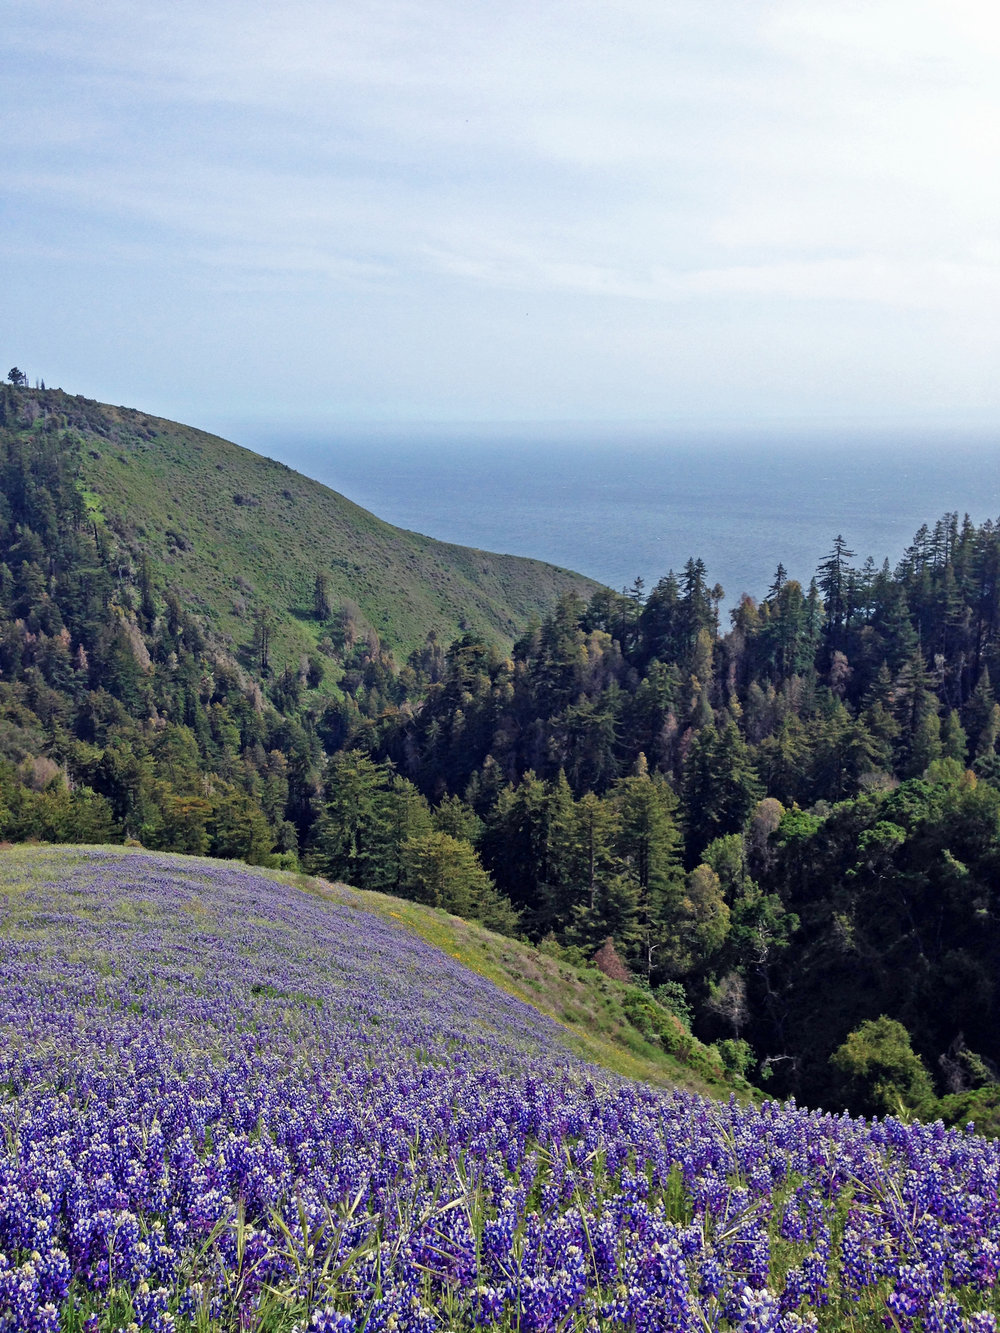 a field of lupin flowers with views of the pacific ocean in the distance